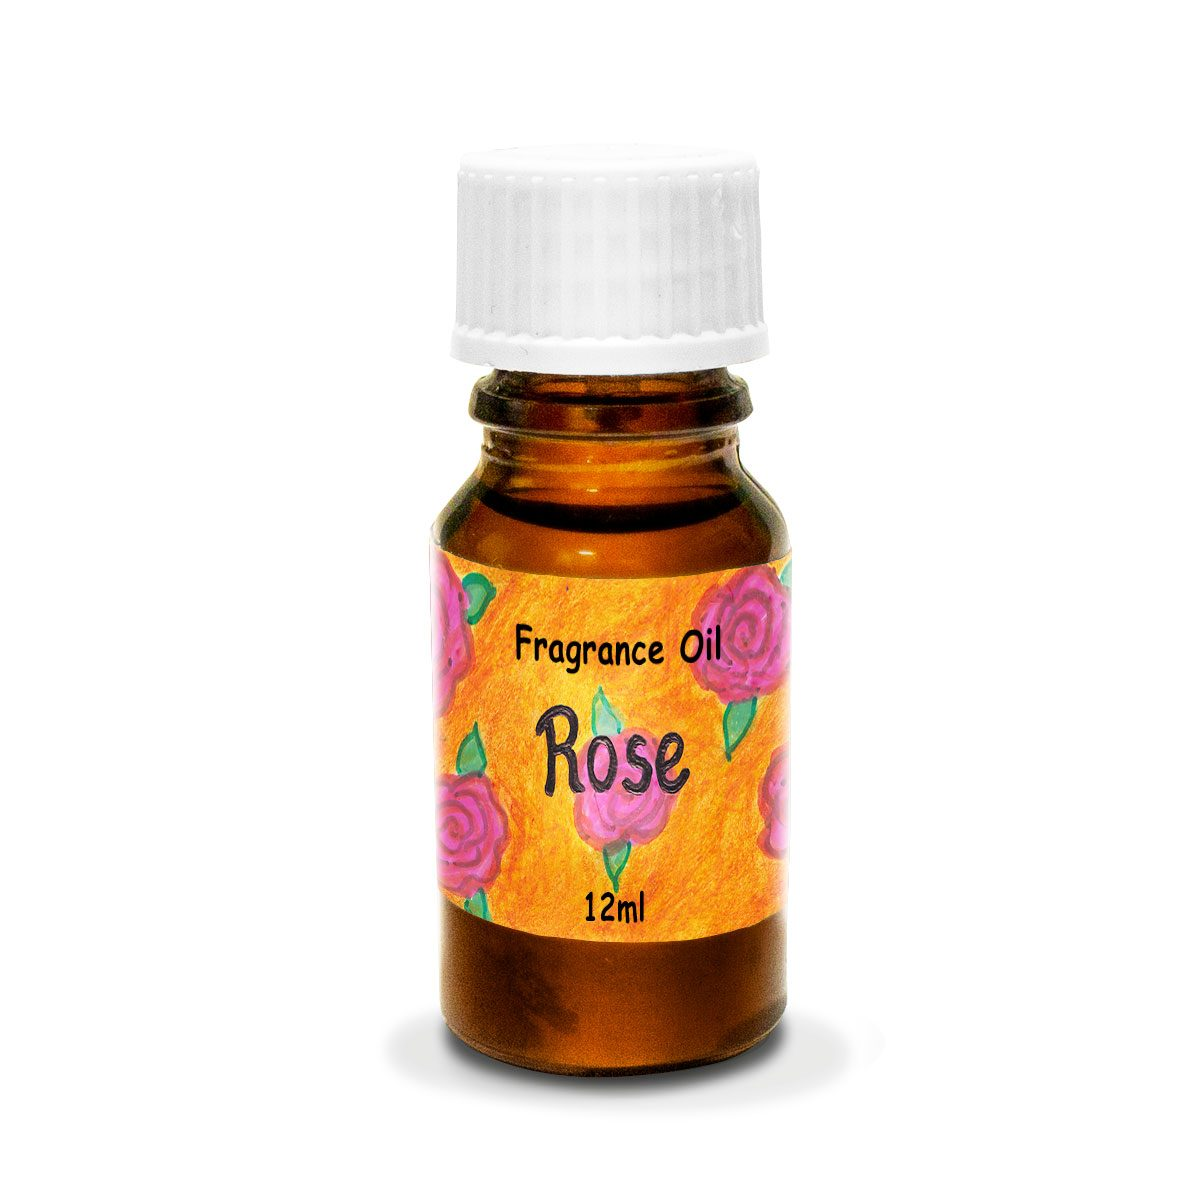 Rose - Fragrance Oil